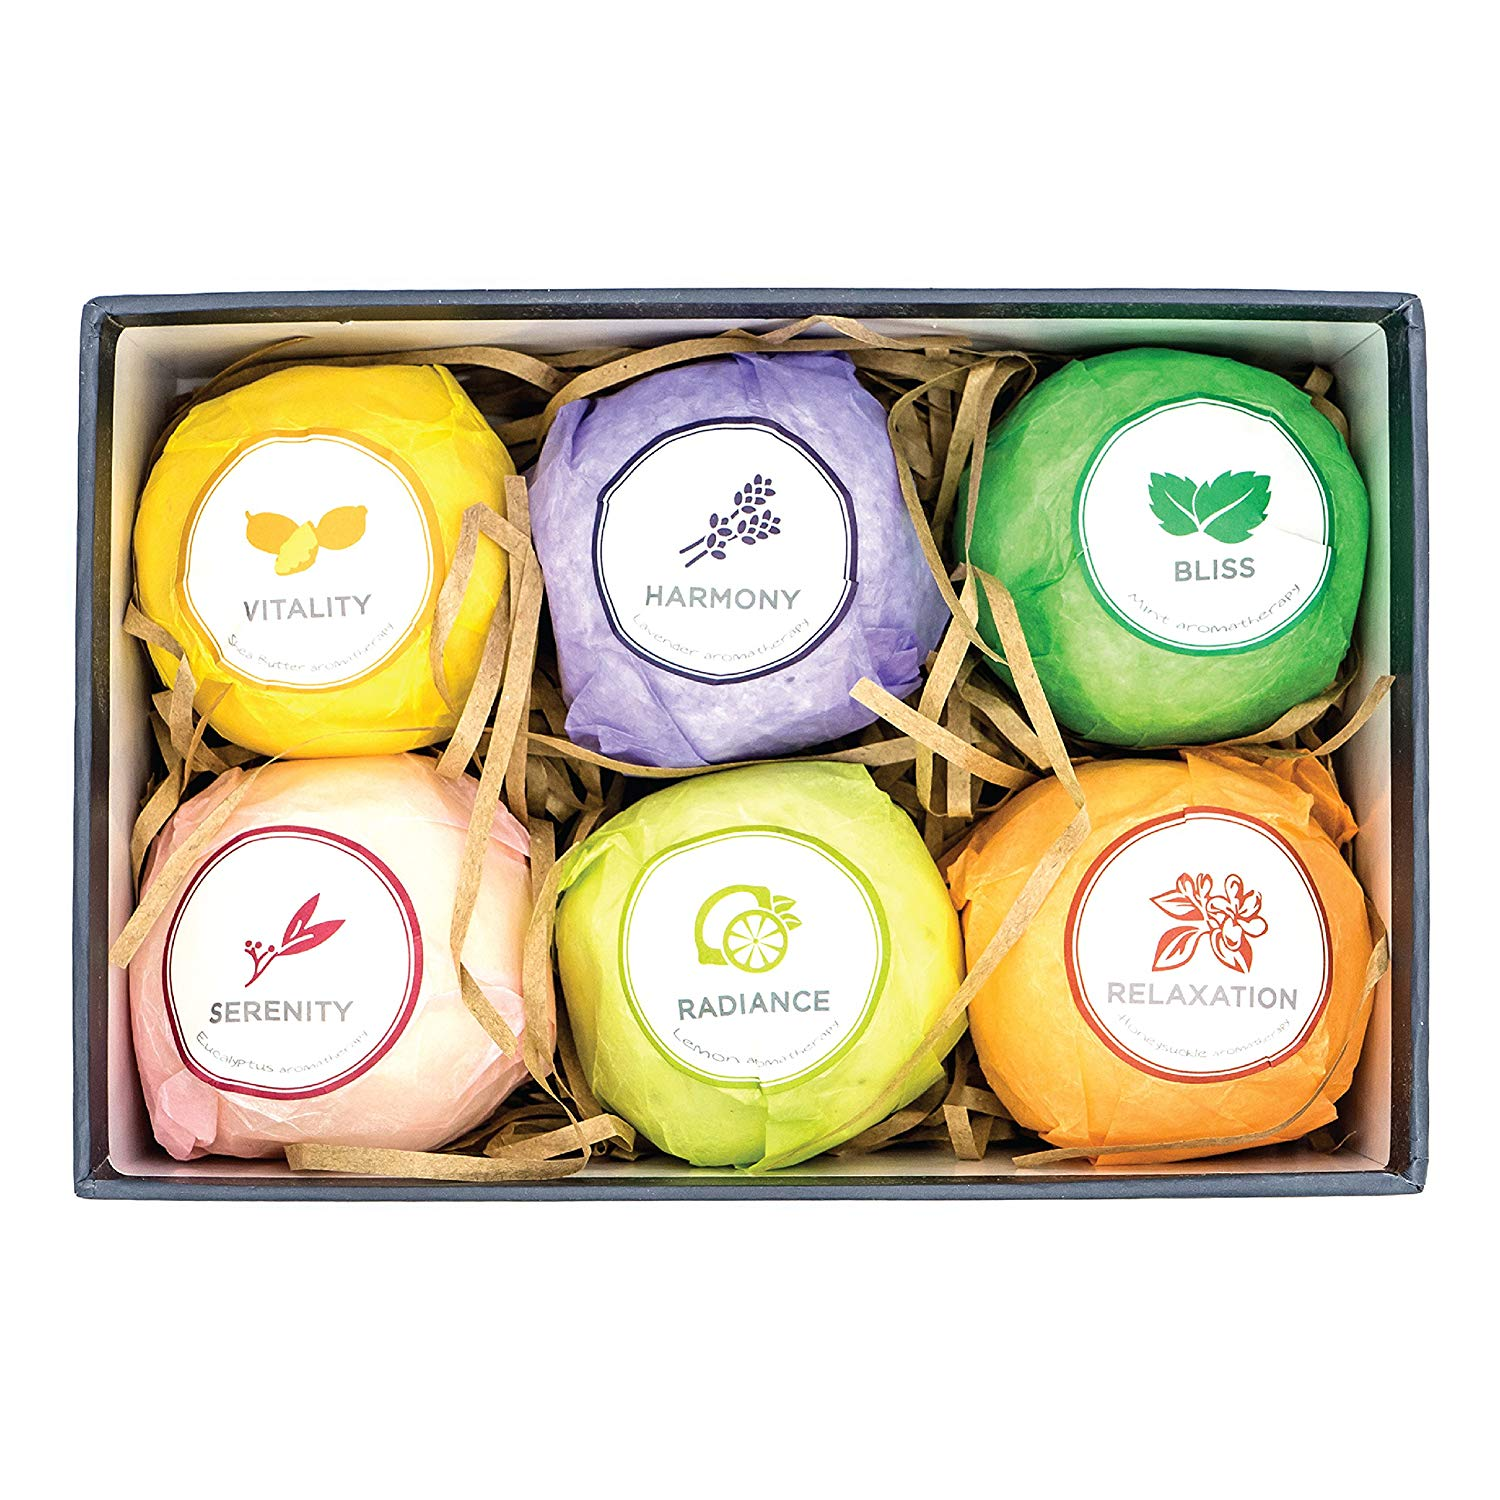 The Escential Co. Bath Bomb Gift Set